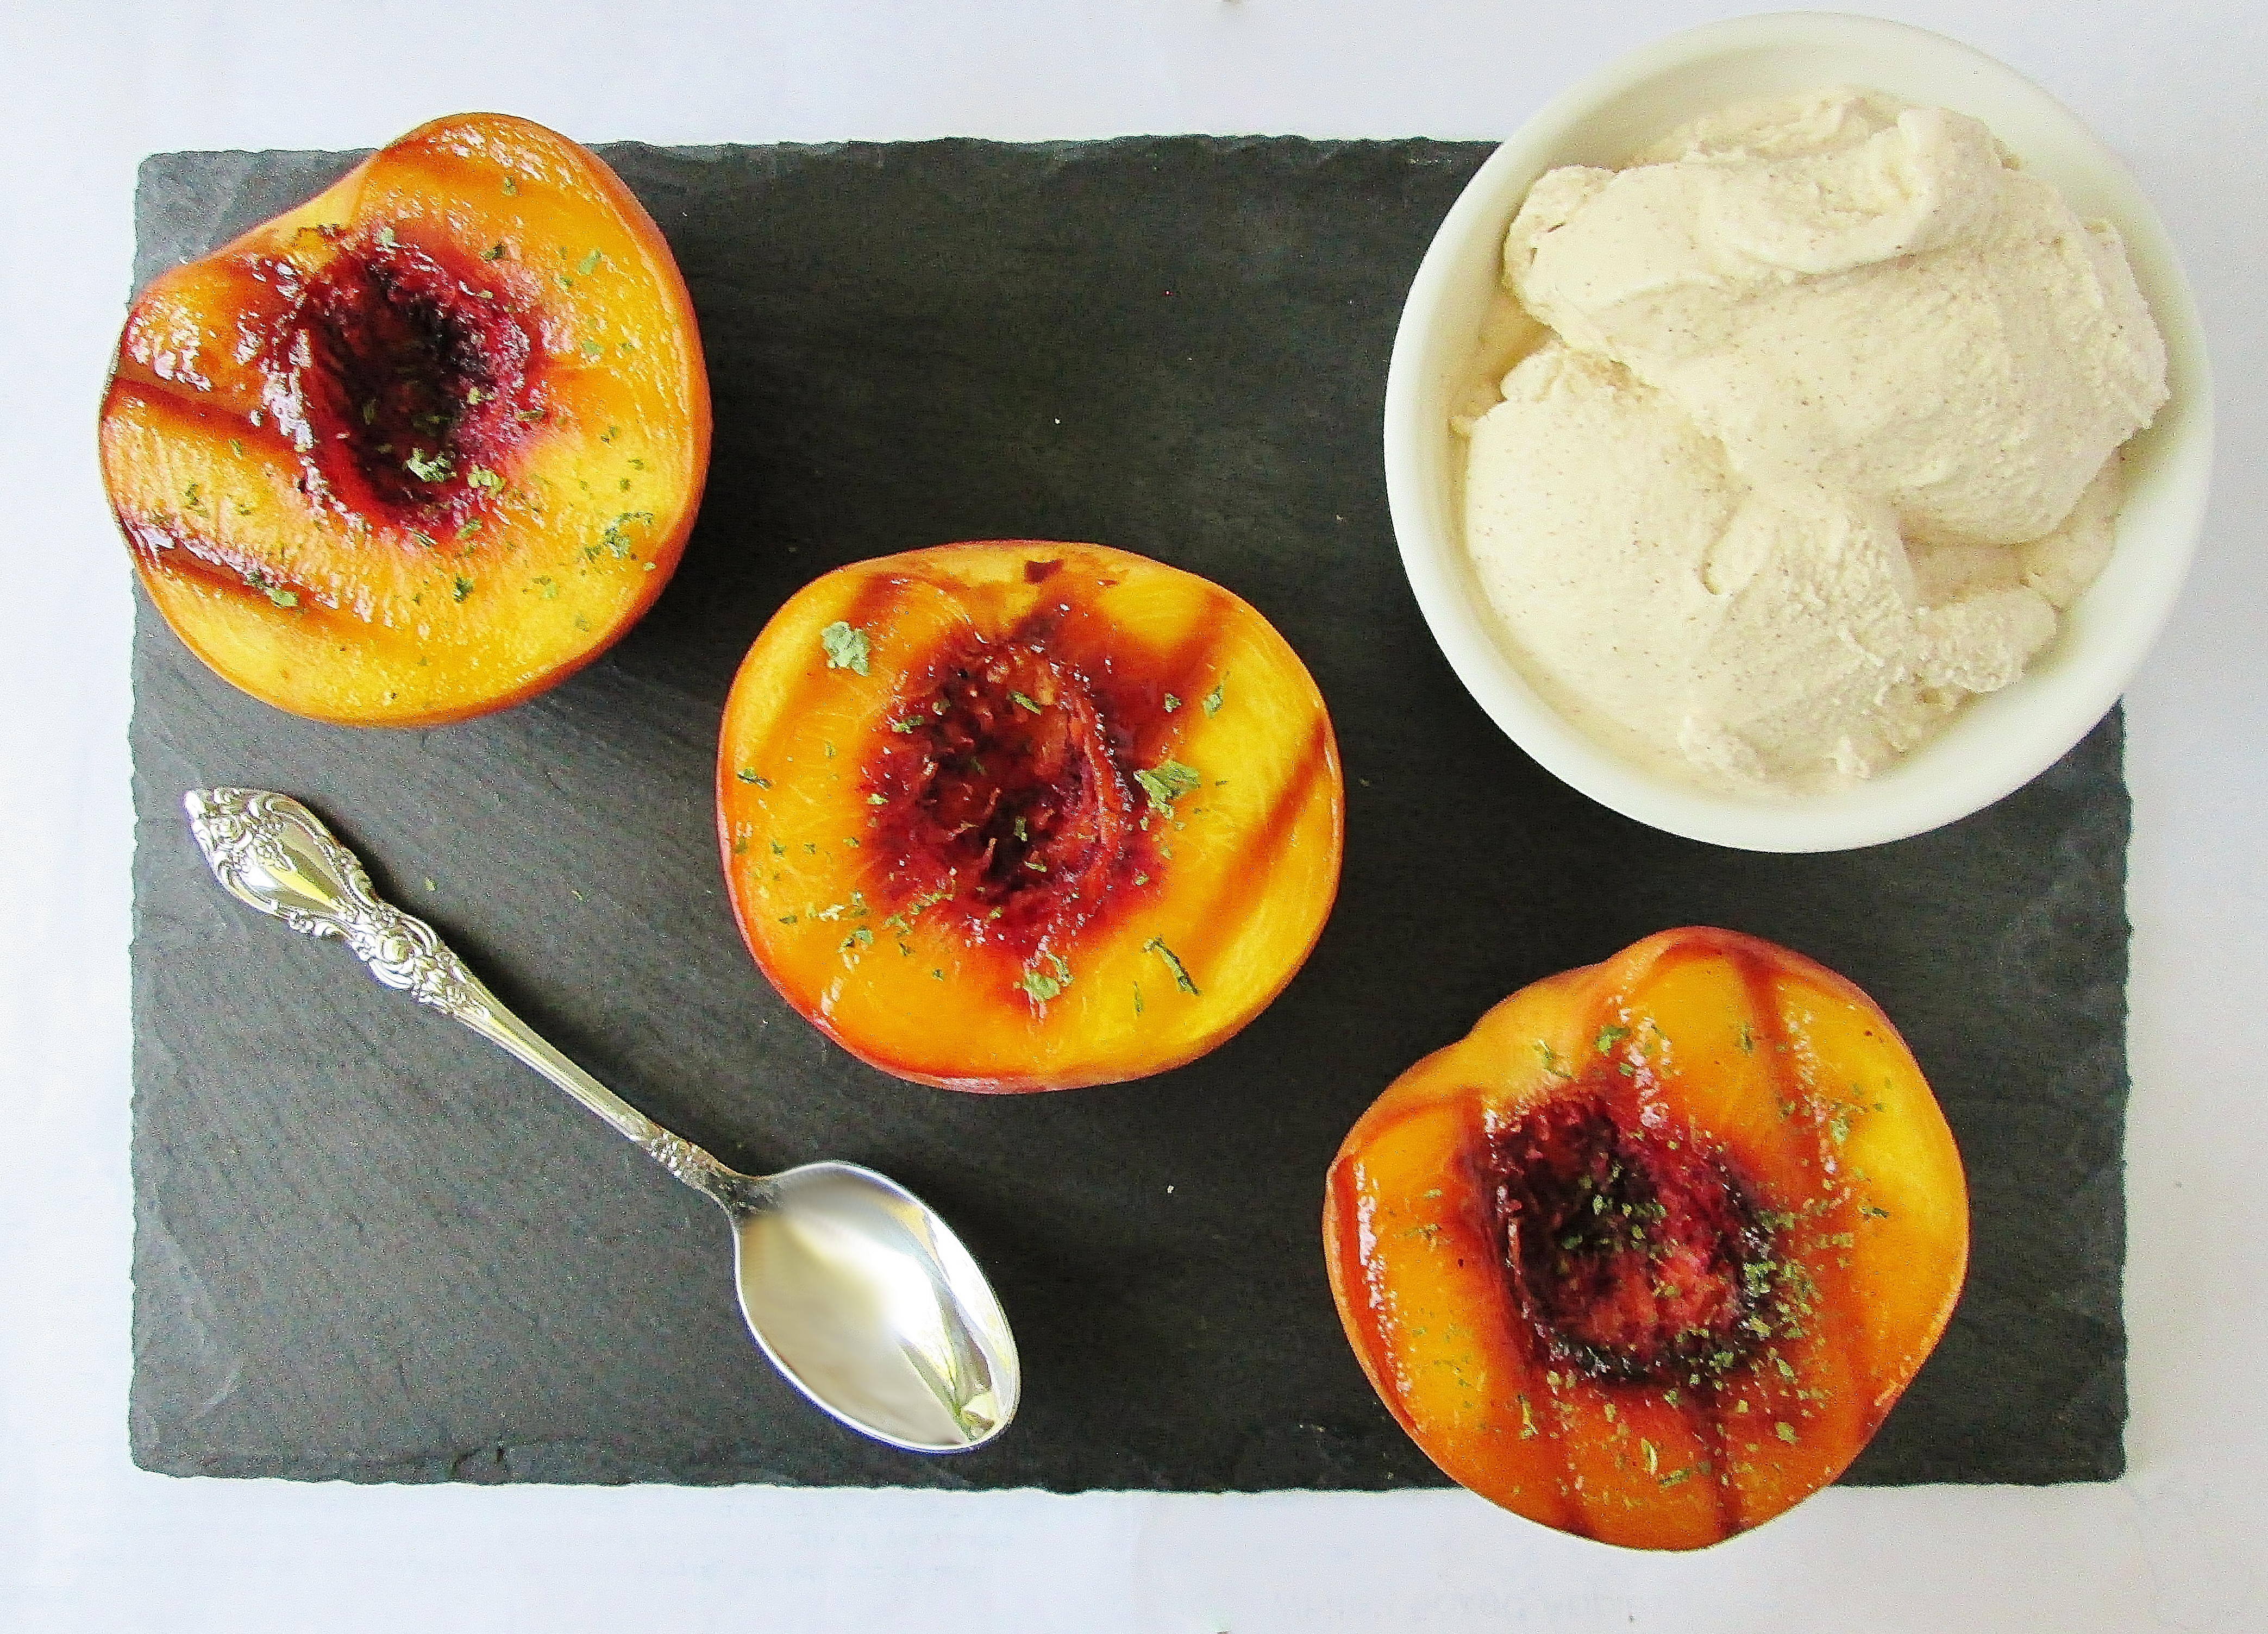 james-and-the-giant-peach-grilled-honeyed-peaches-with-cinnamon-ice-cream-d-8508